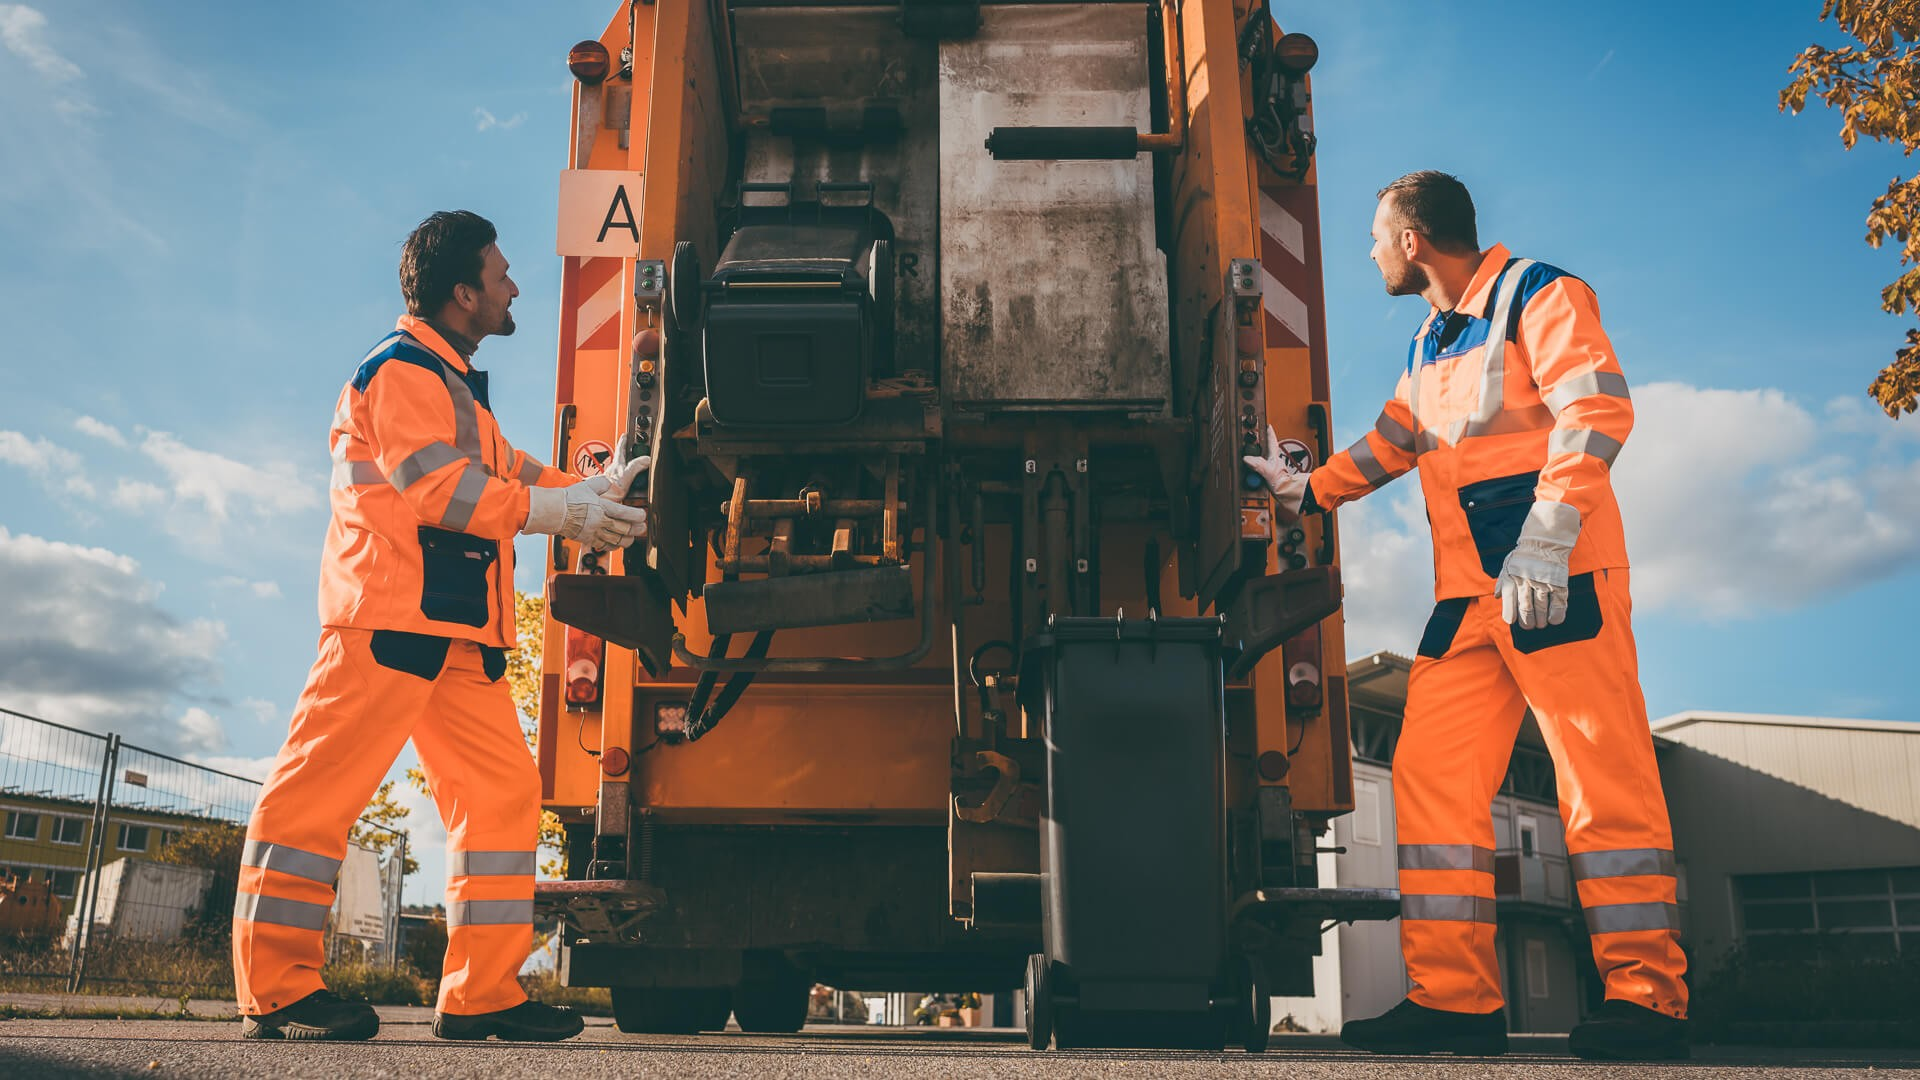 Two refuse collection workers loading garbage into waste truck emptying containers.